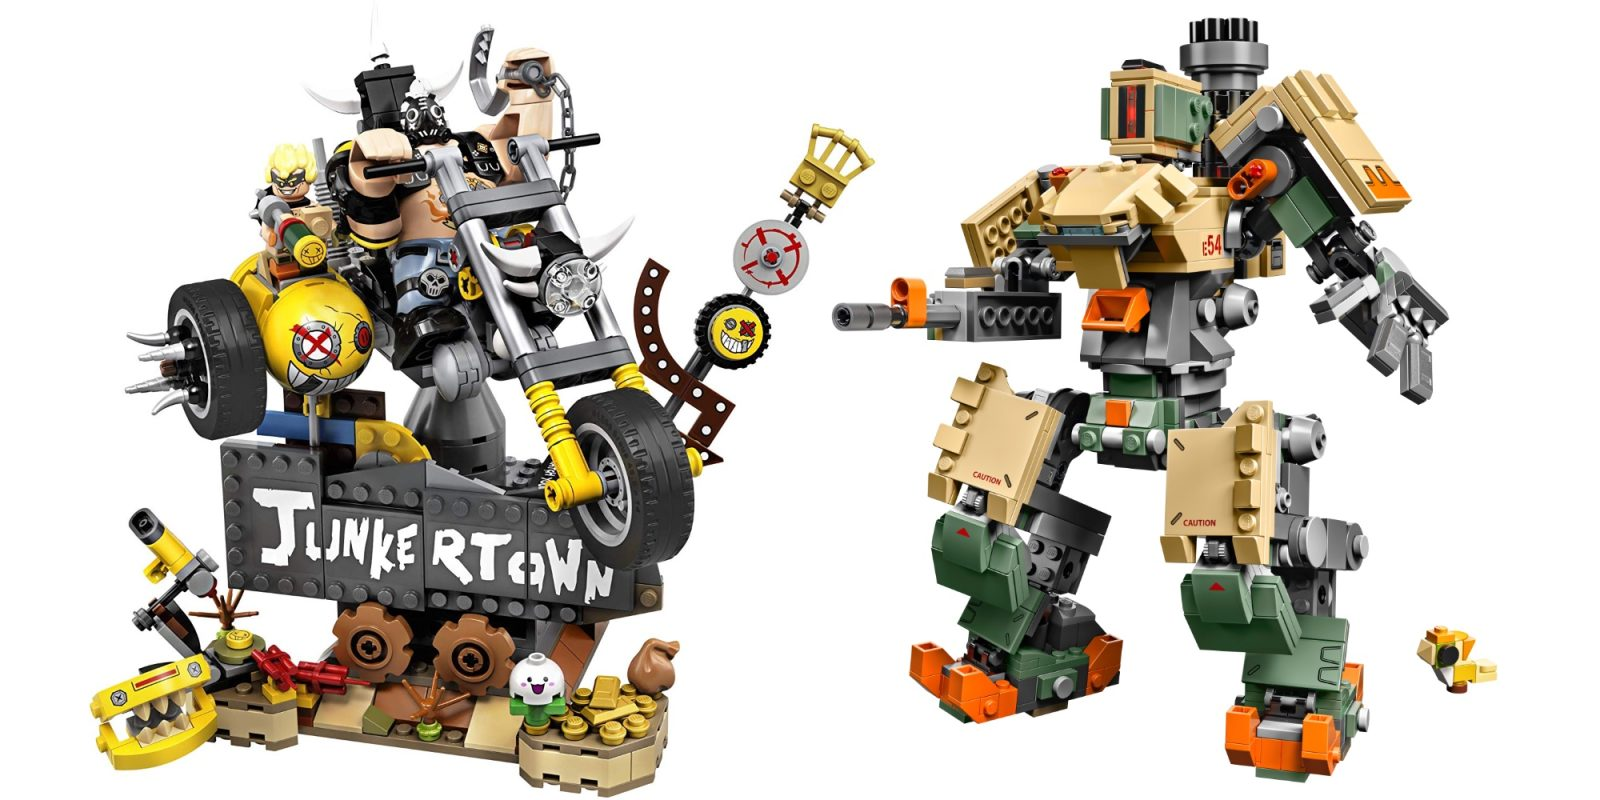 LEGO's Overwatch Junkrat and Roadhog kit is $40 (Save 20%), more from $6